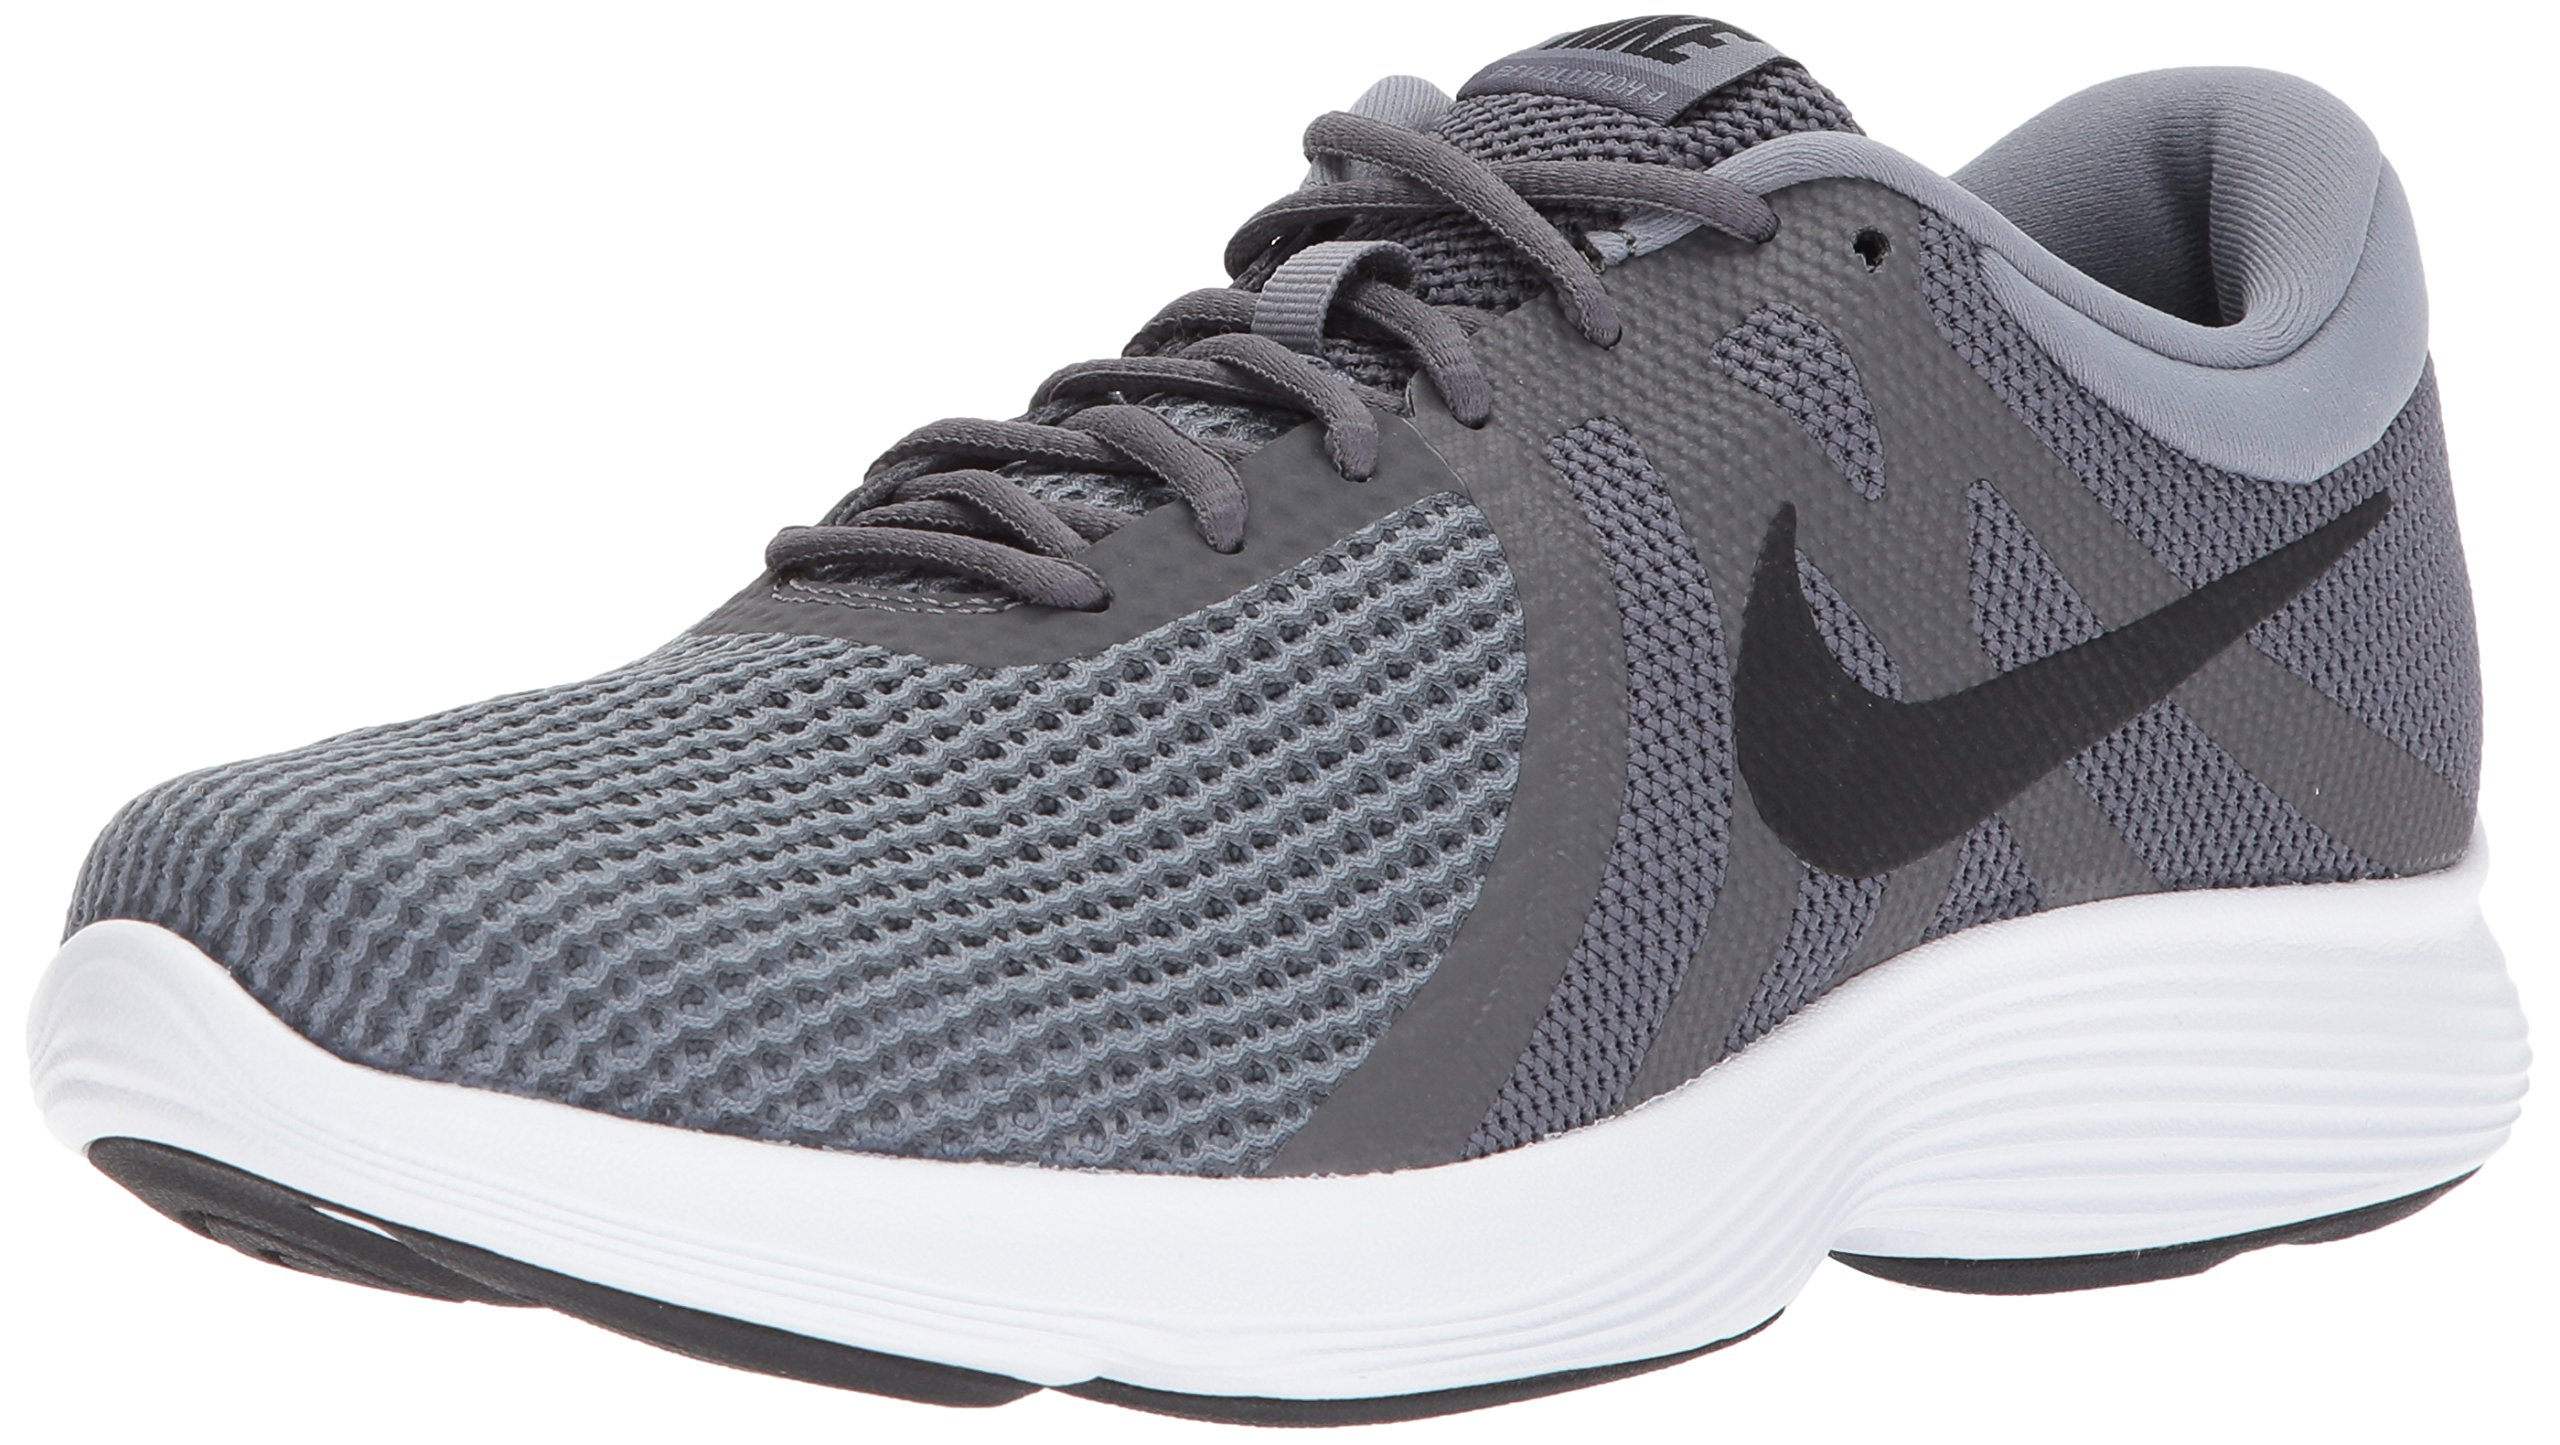 Nike Men's Revolution 4 Running Shoe, Dark Black-Cool Grey/White, 6.5 Regular US by Nike